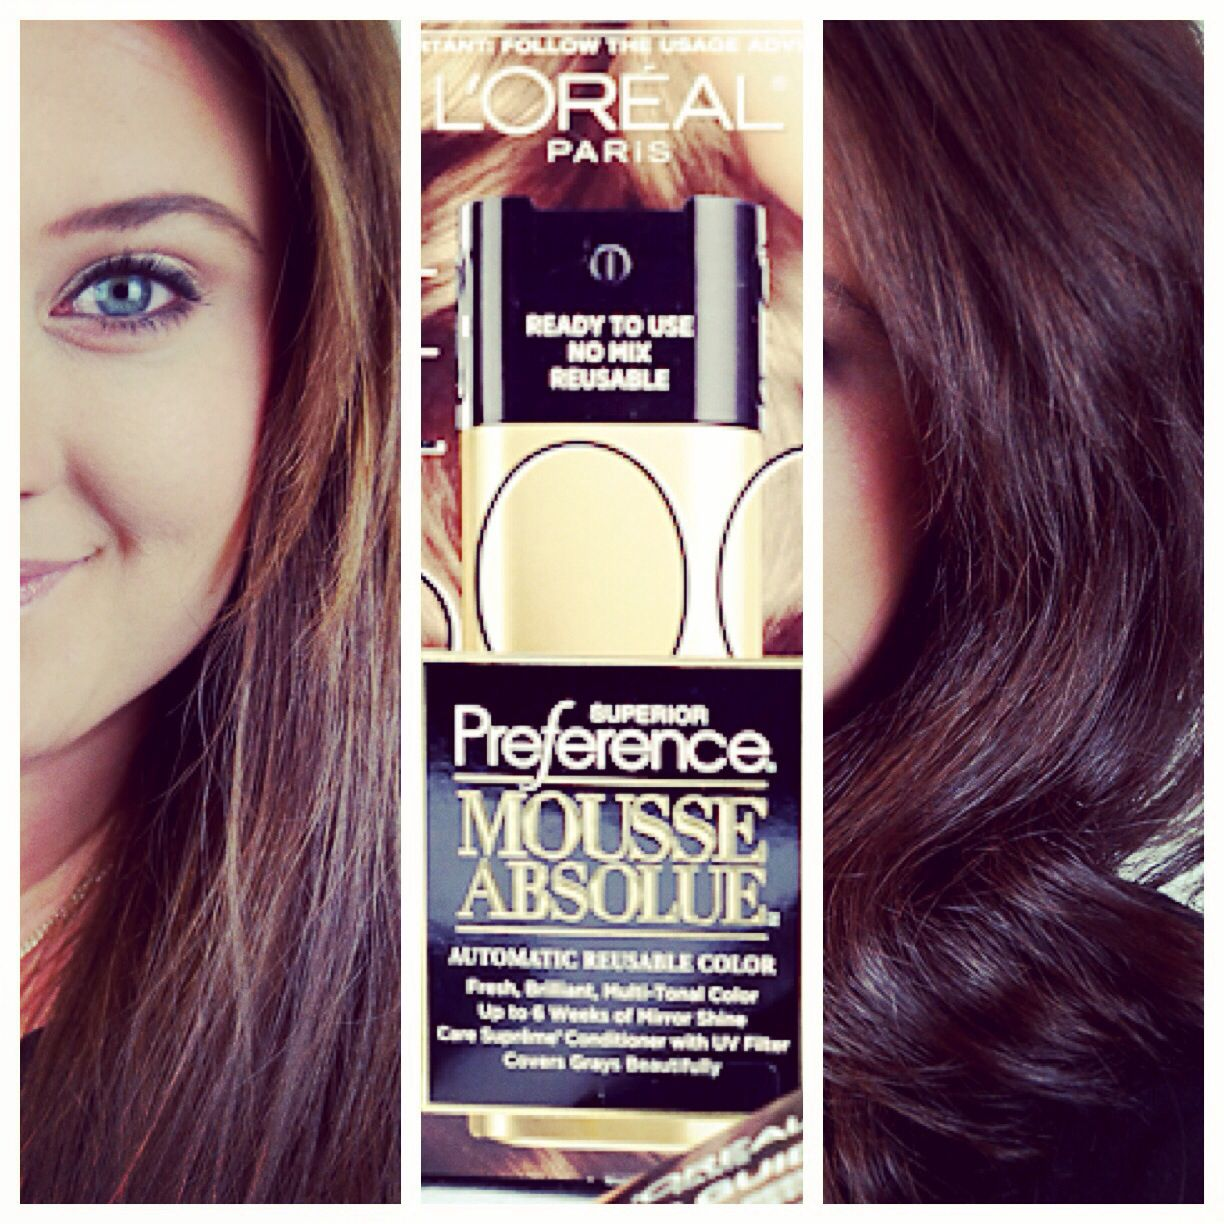 A New Way To Color Hair At Home Loreal Superior Preference Mousse